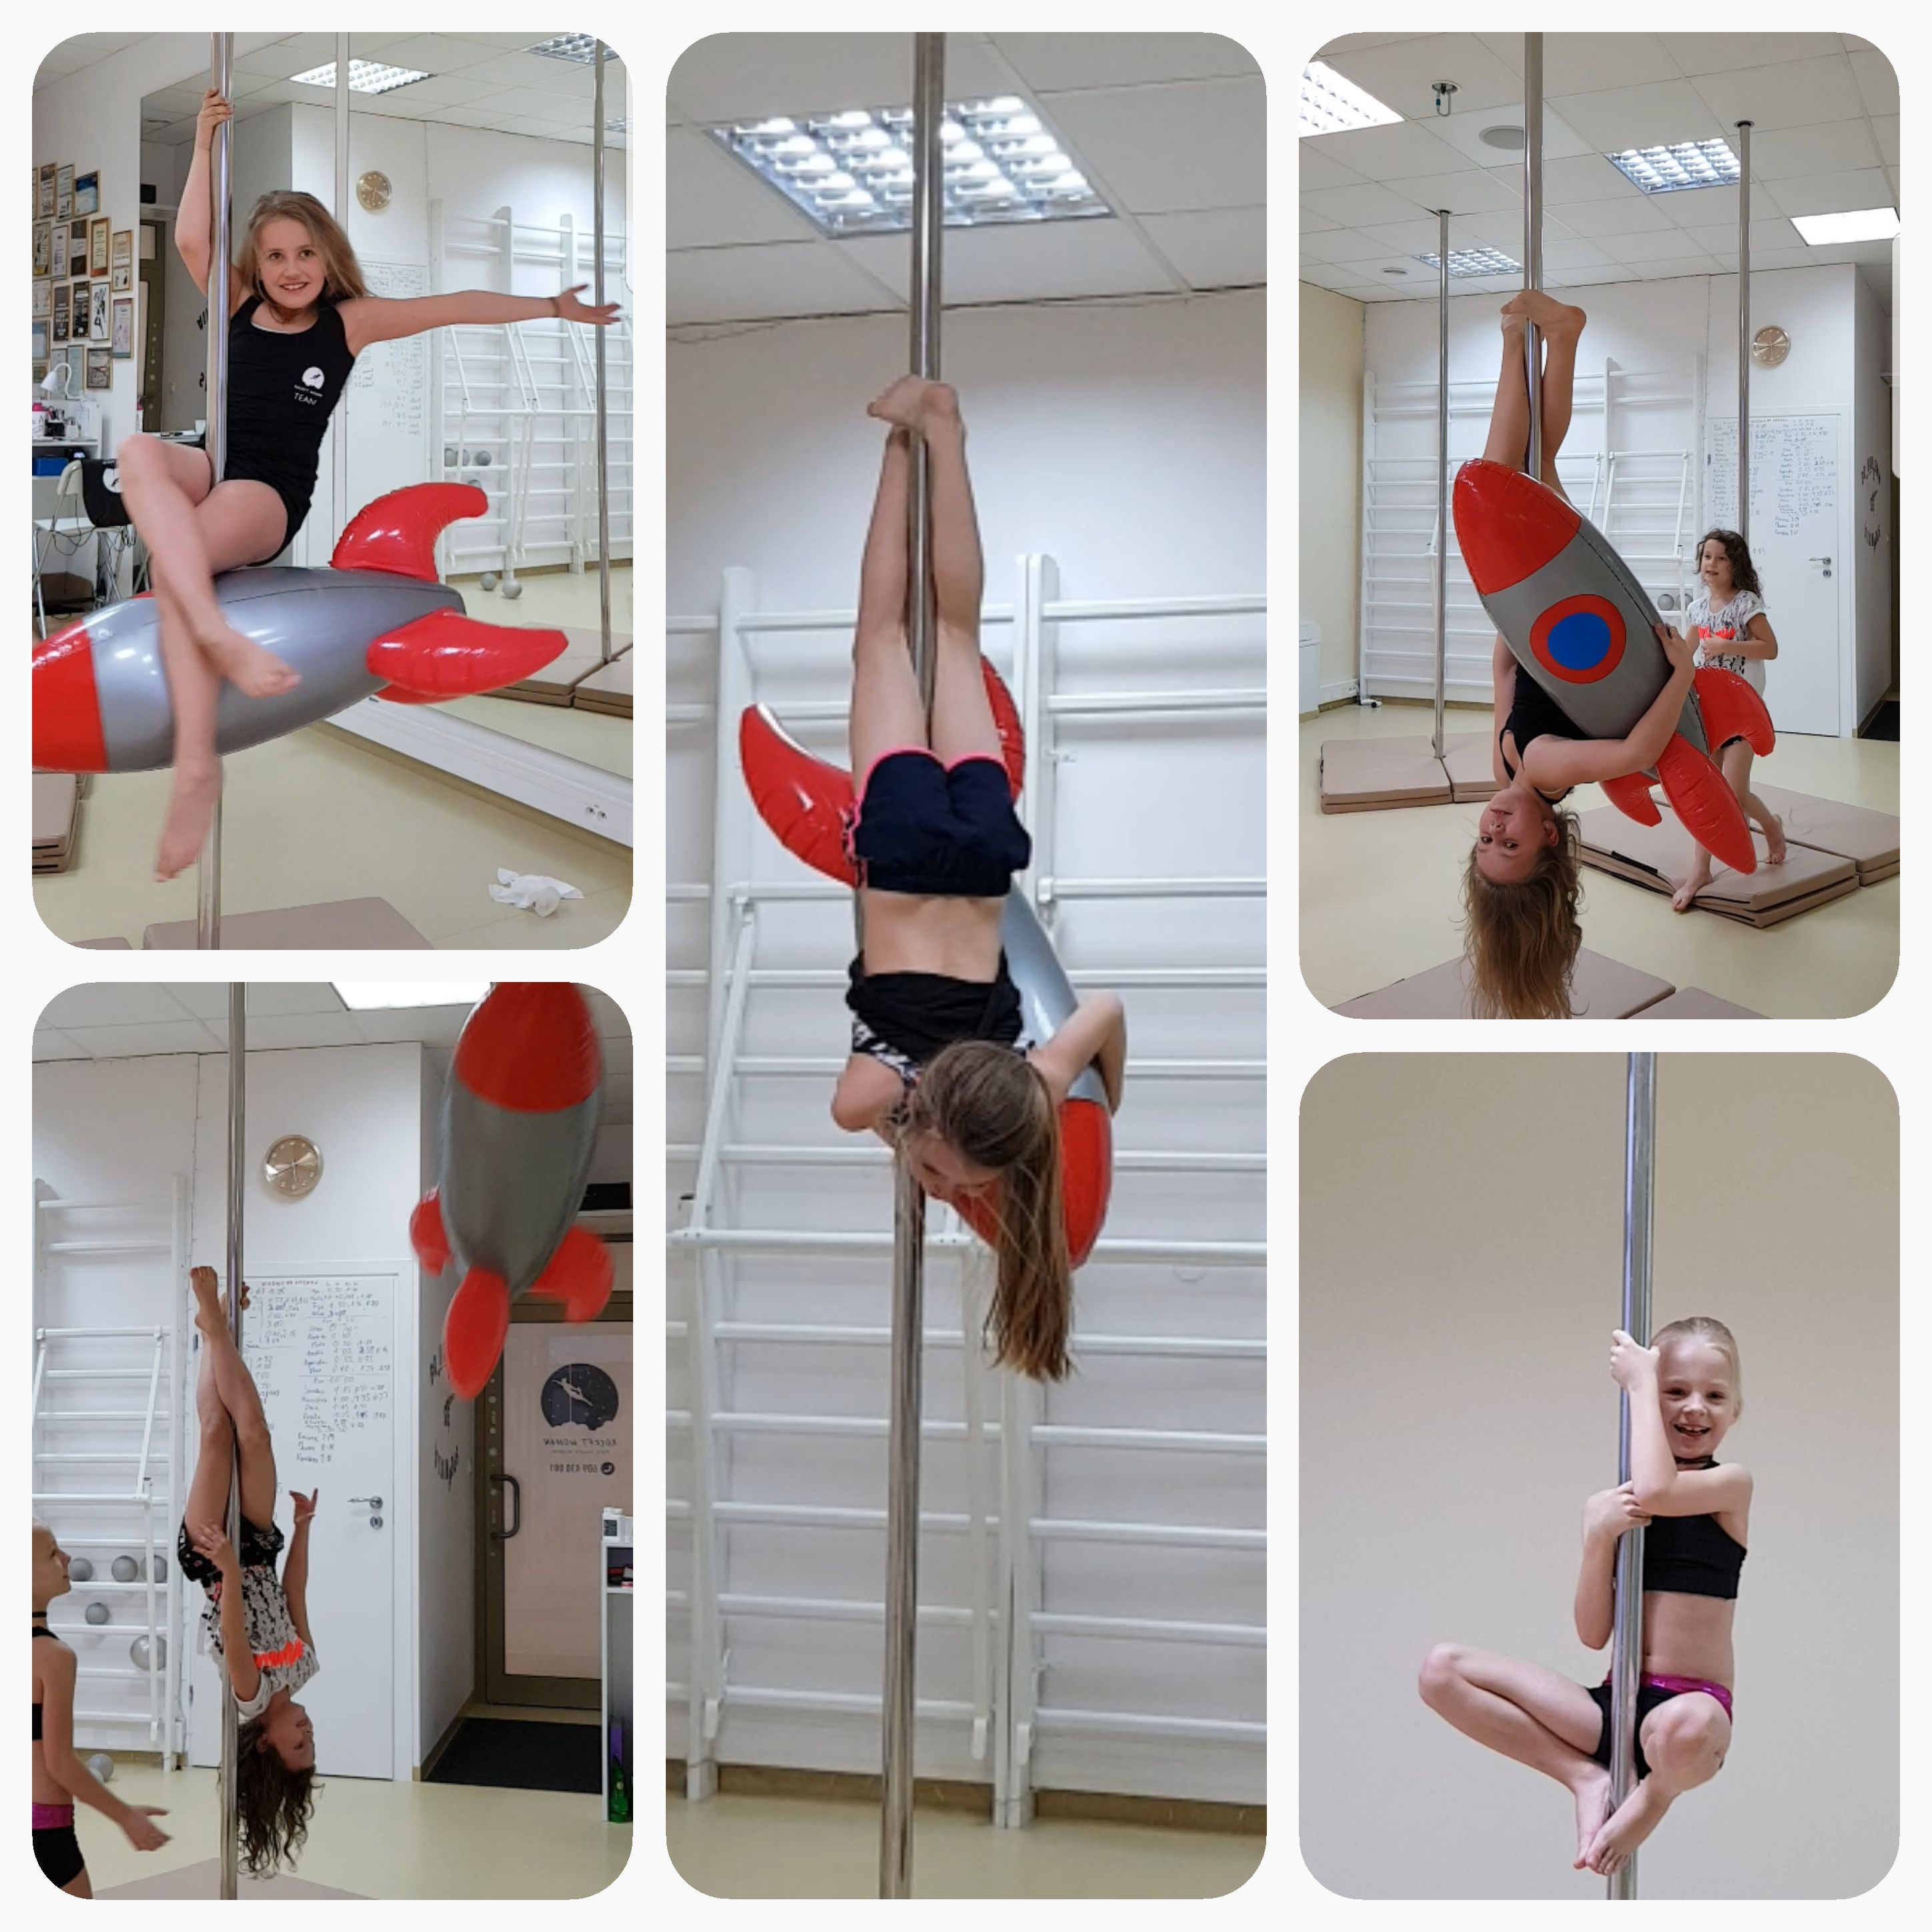 Symbol Rocket Woman Pole Dance School- dmuchana rakietka 💕 🚀